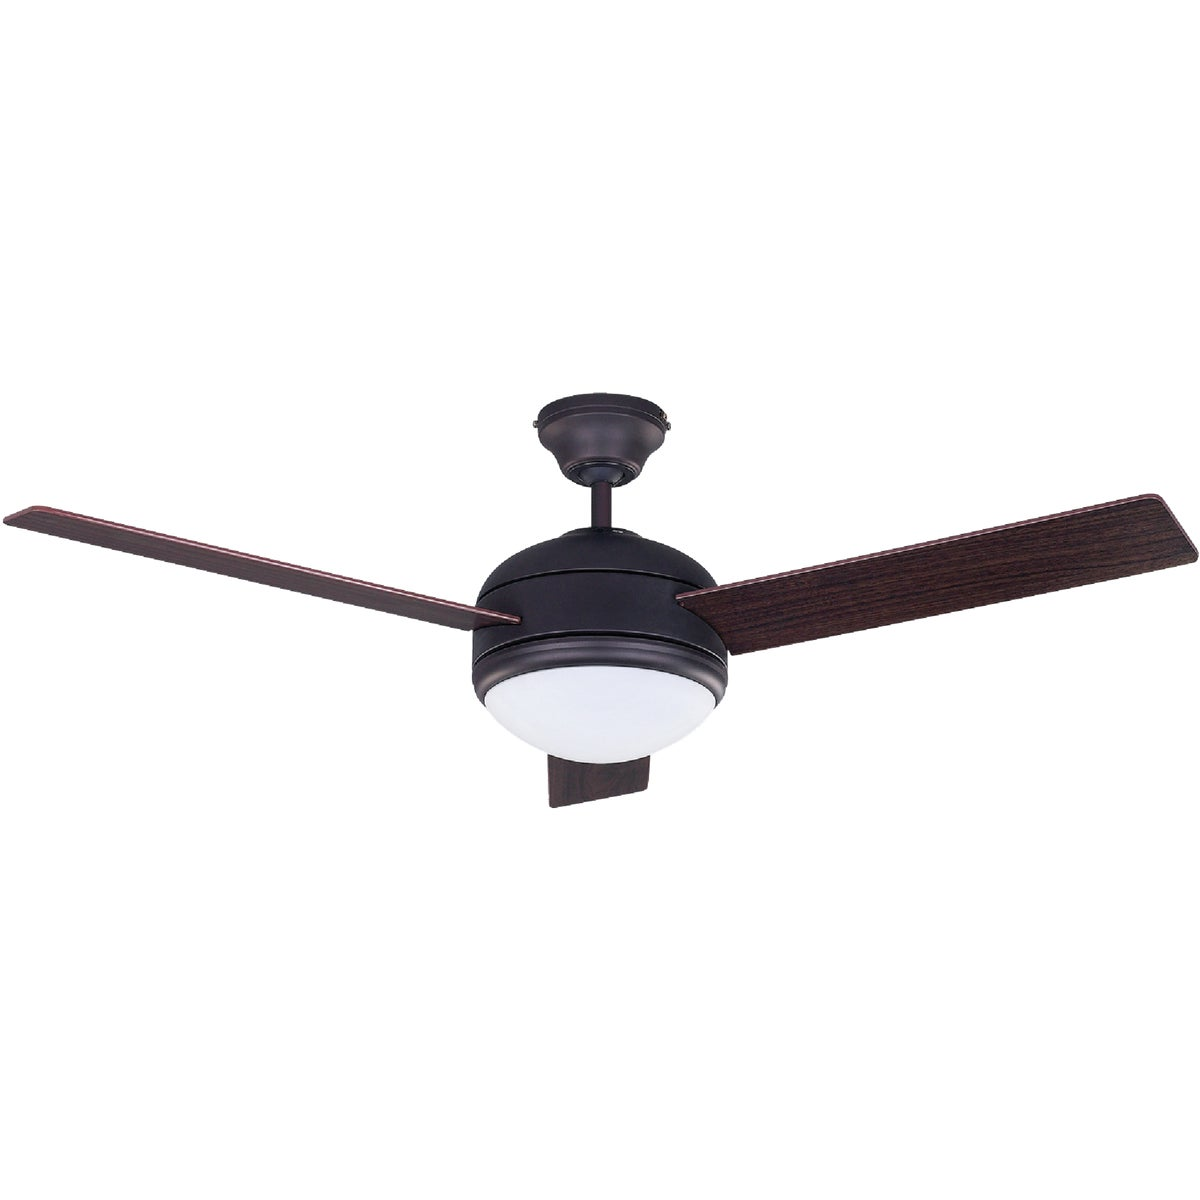 "48"" CALIBRE ORB CEIL FAN"